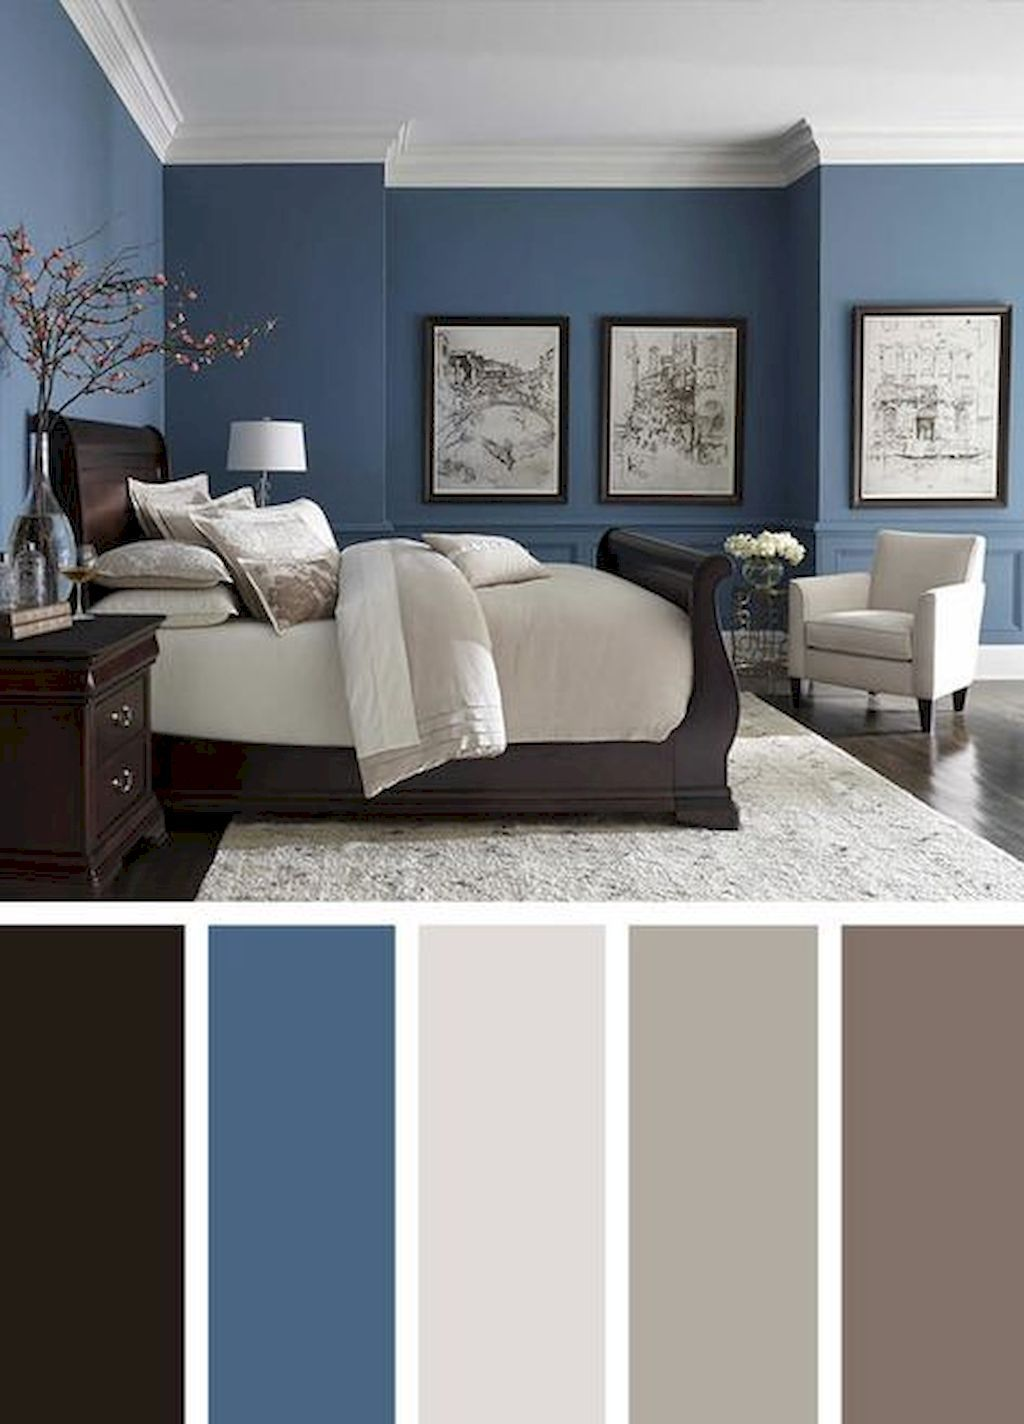 72 Simple Bedroom Decorating Ideas With Beautiful Color Best